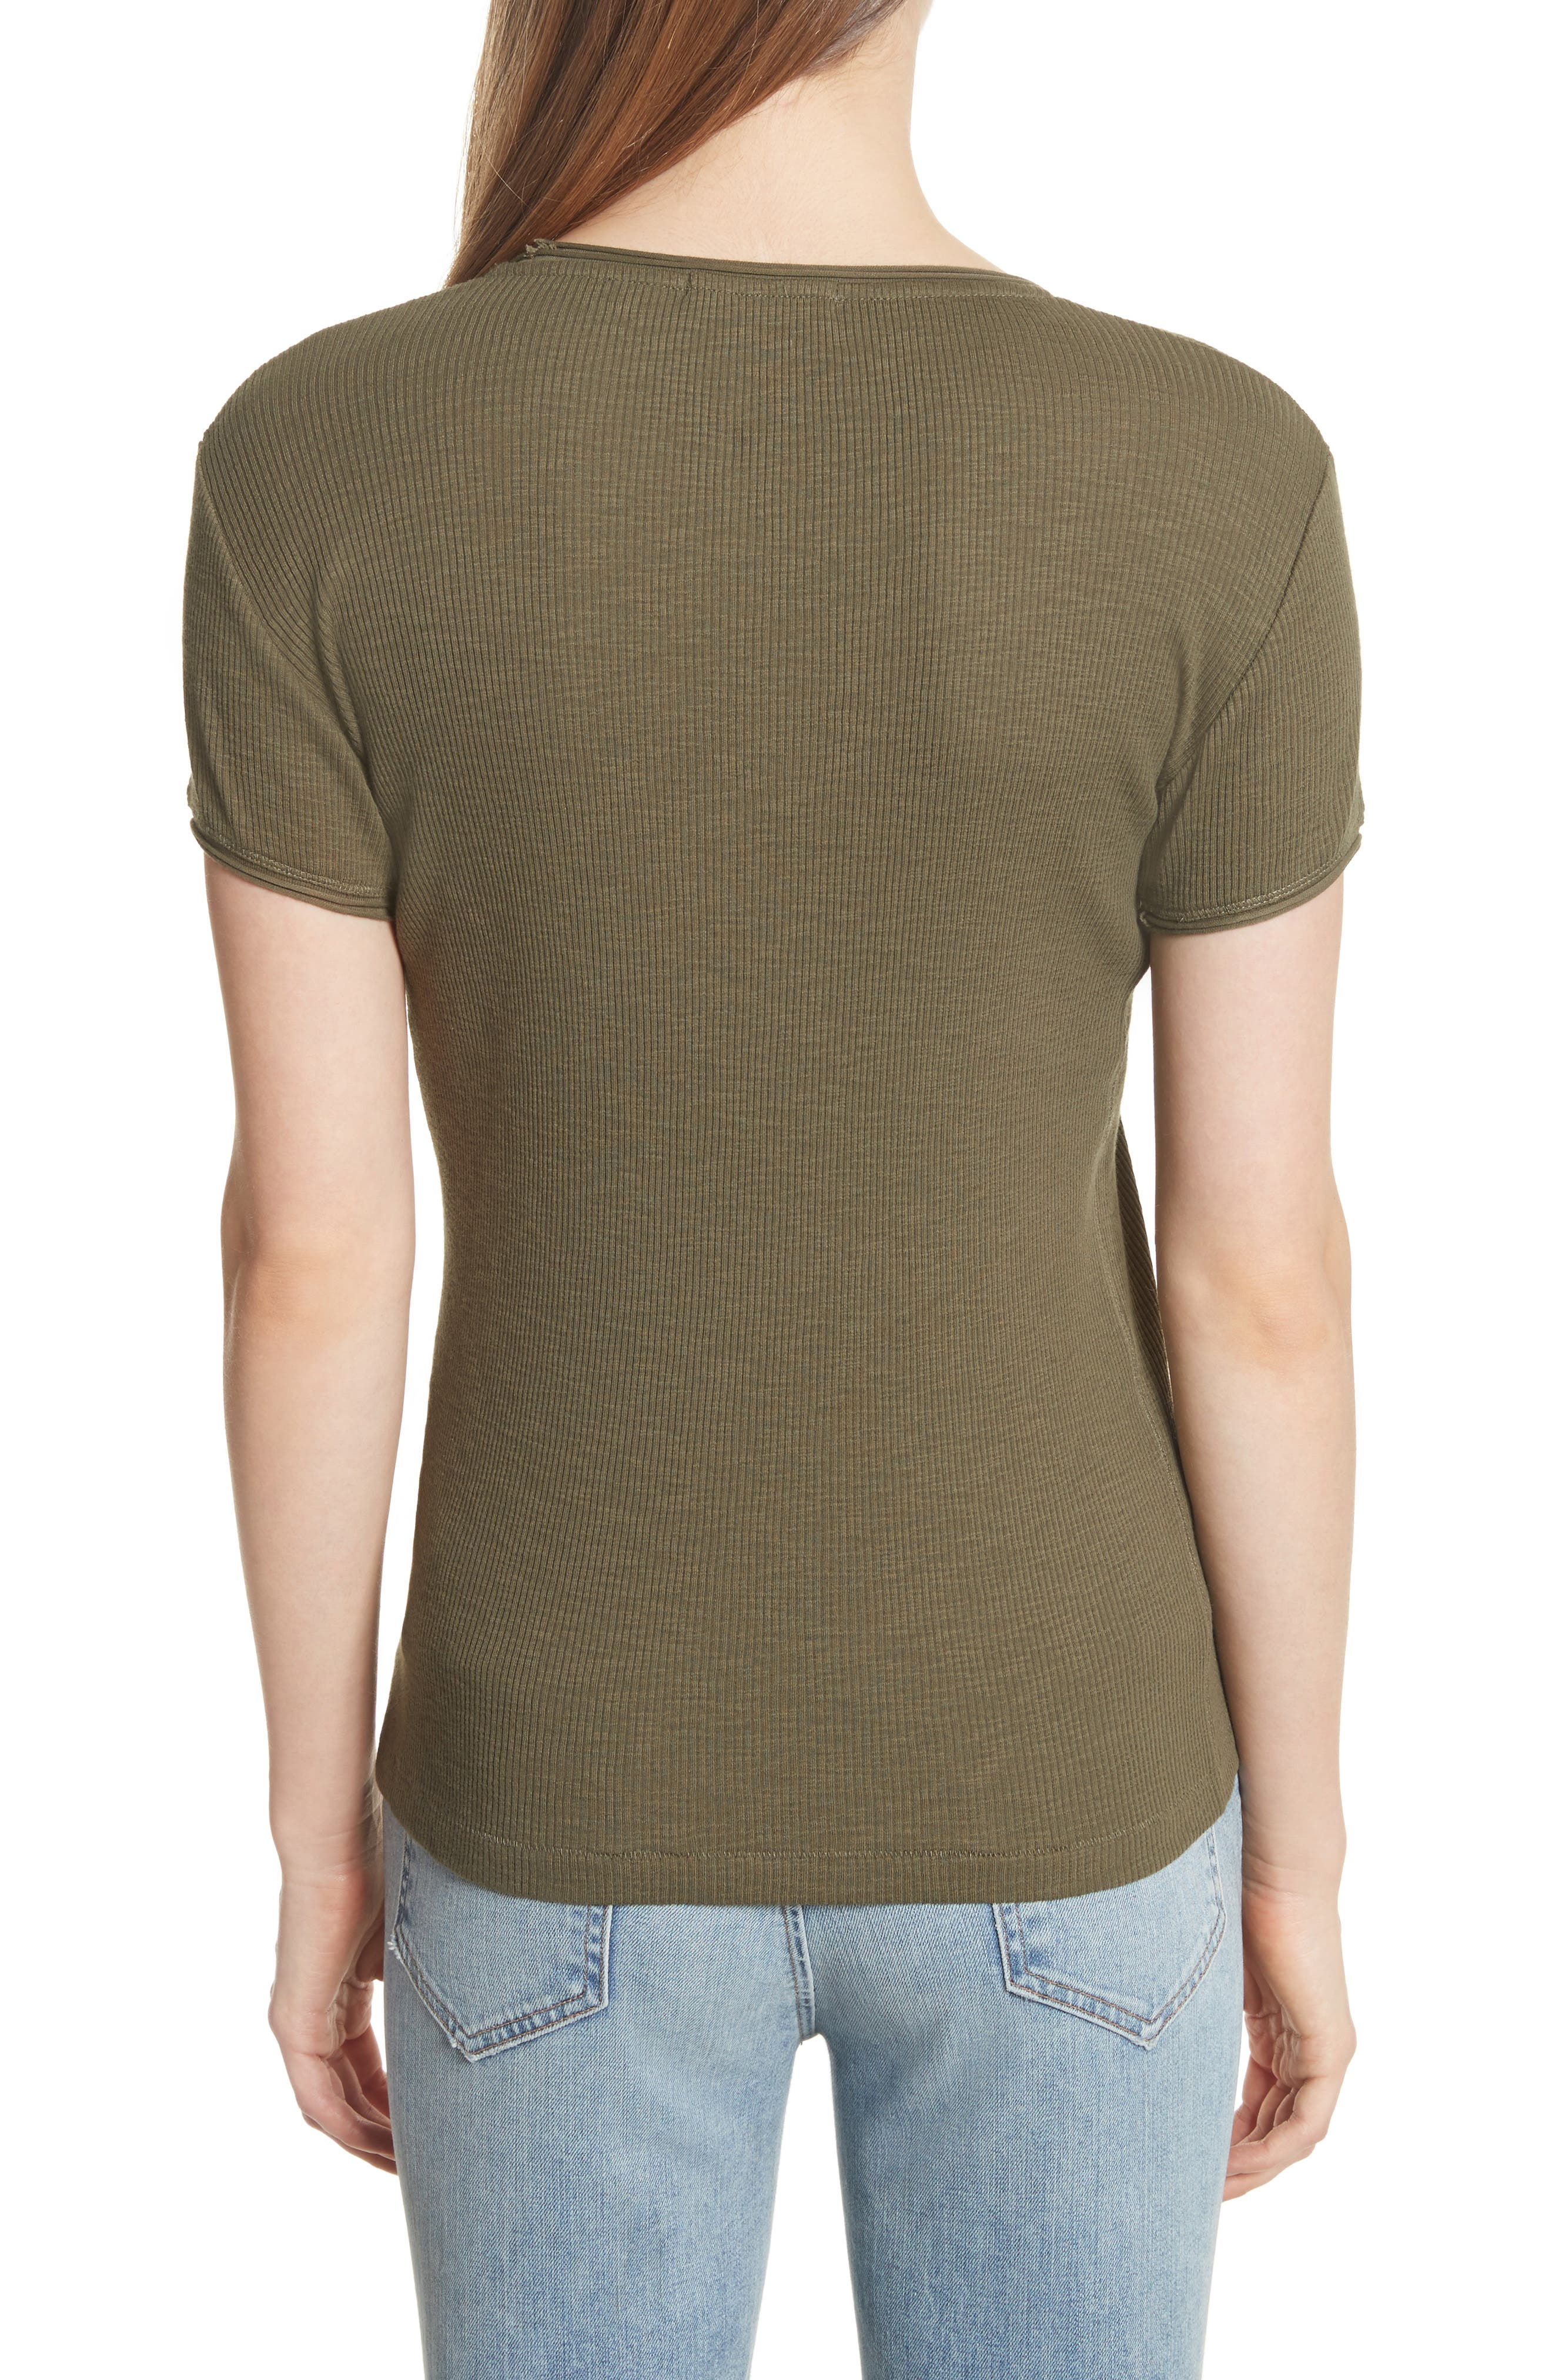 Lilies Tee,                             Alternate thumbnail 2, color,                             Dark Olive